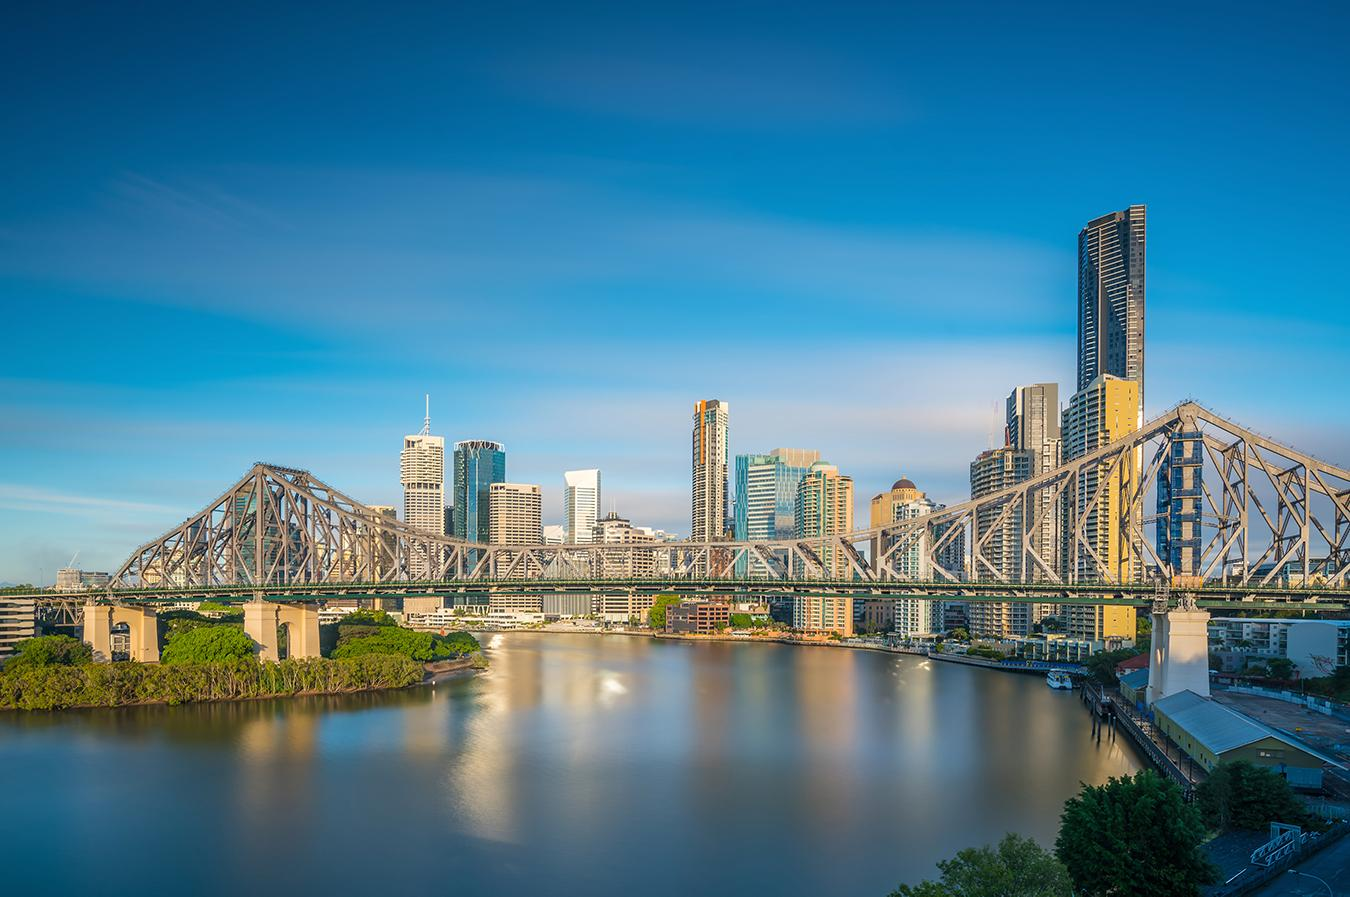 Views of Brisbane's skyline from the coast